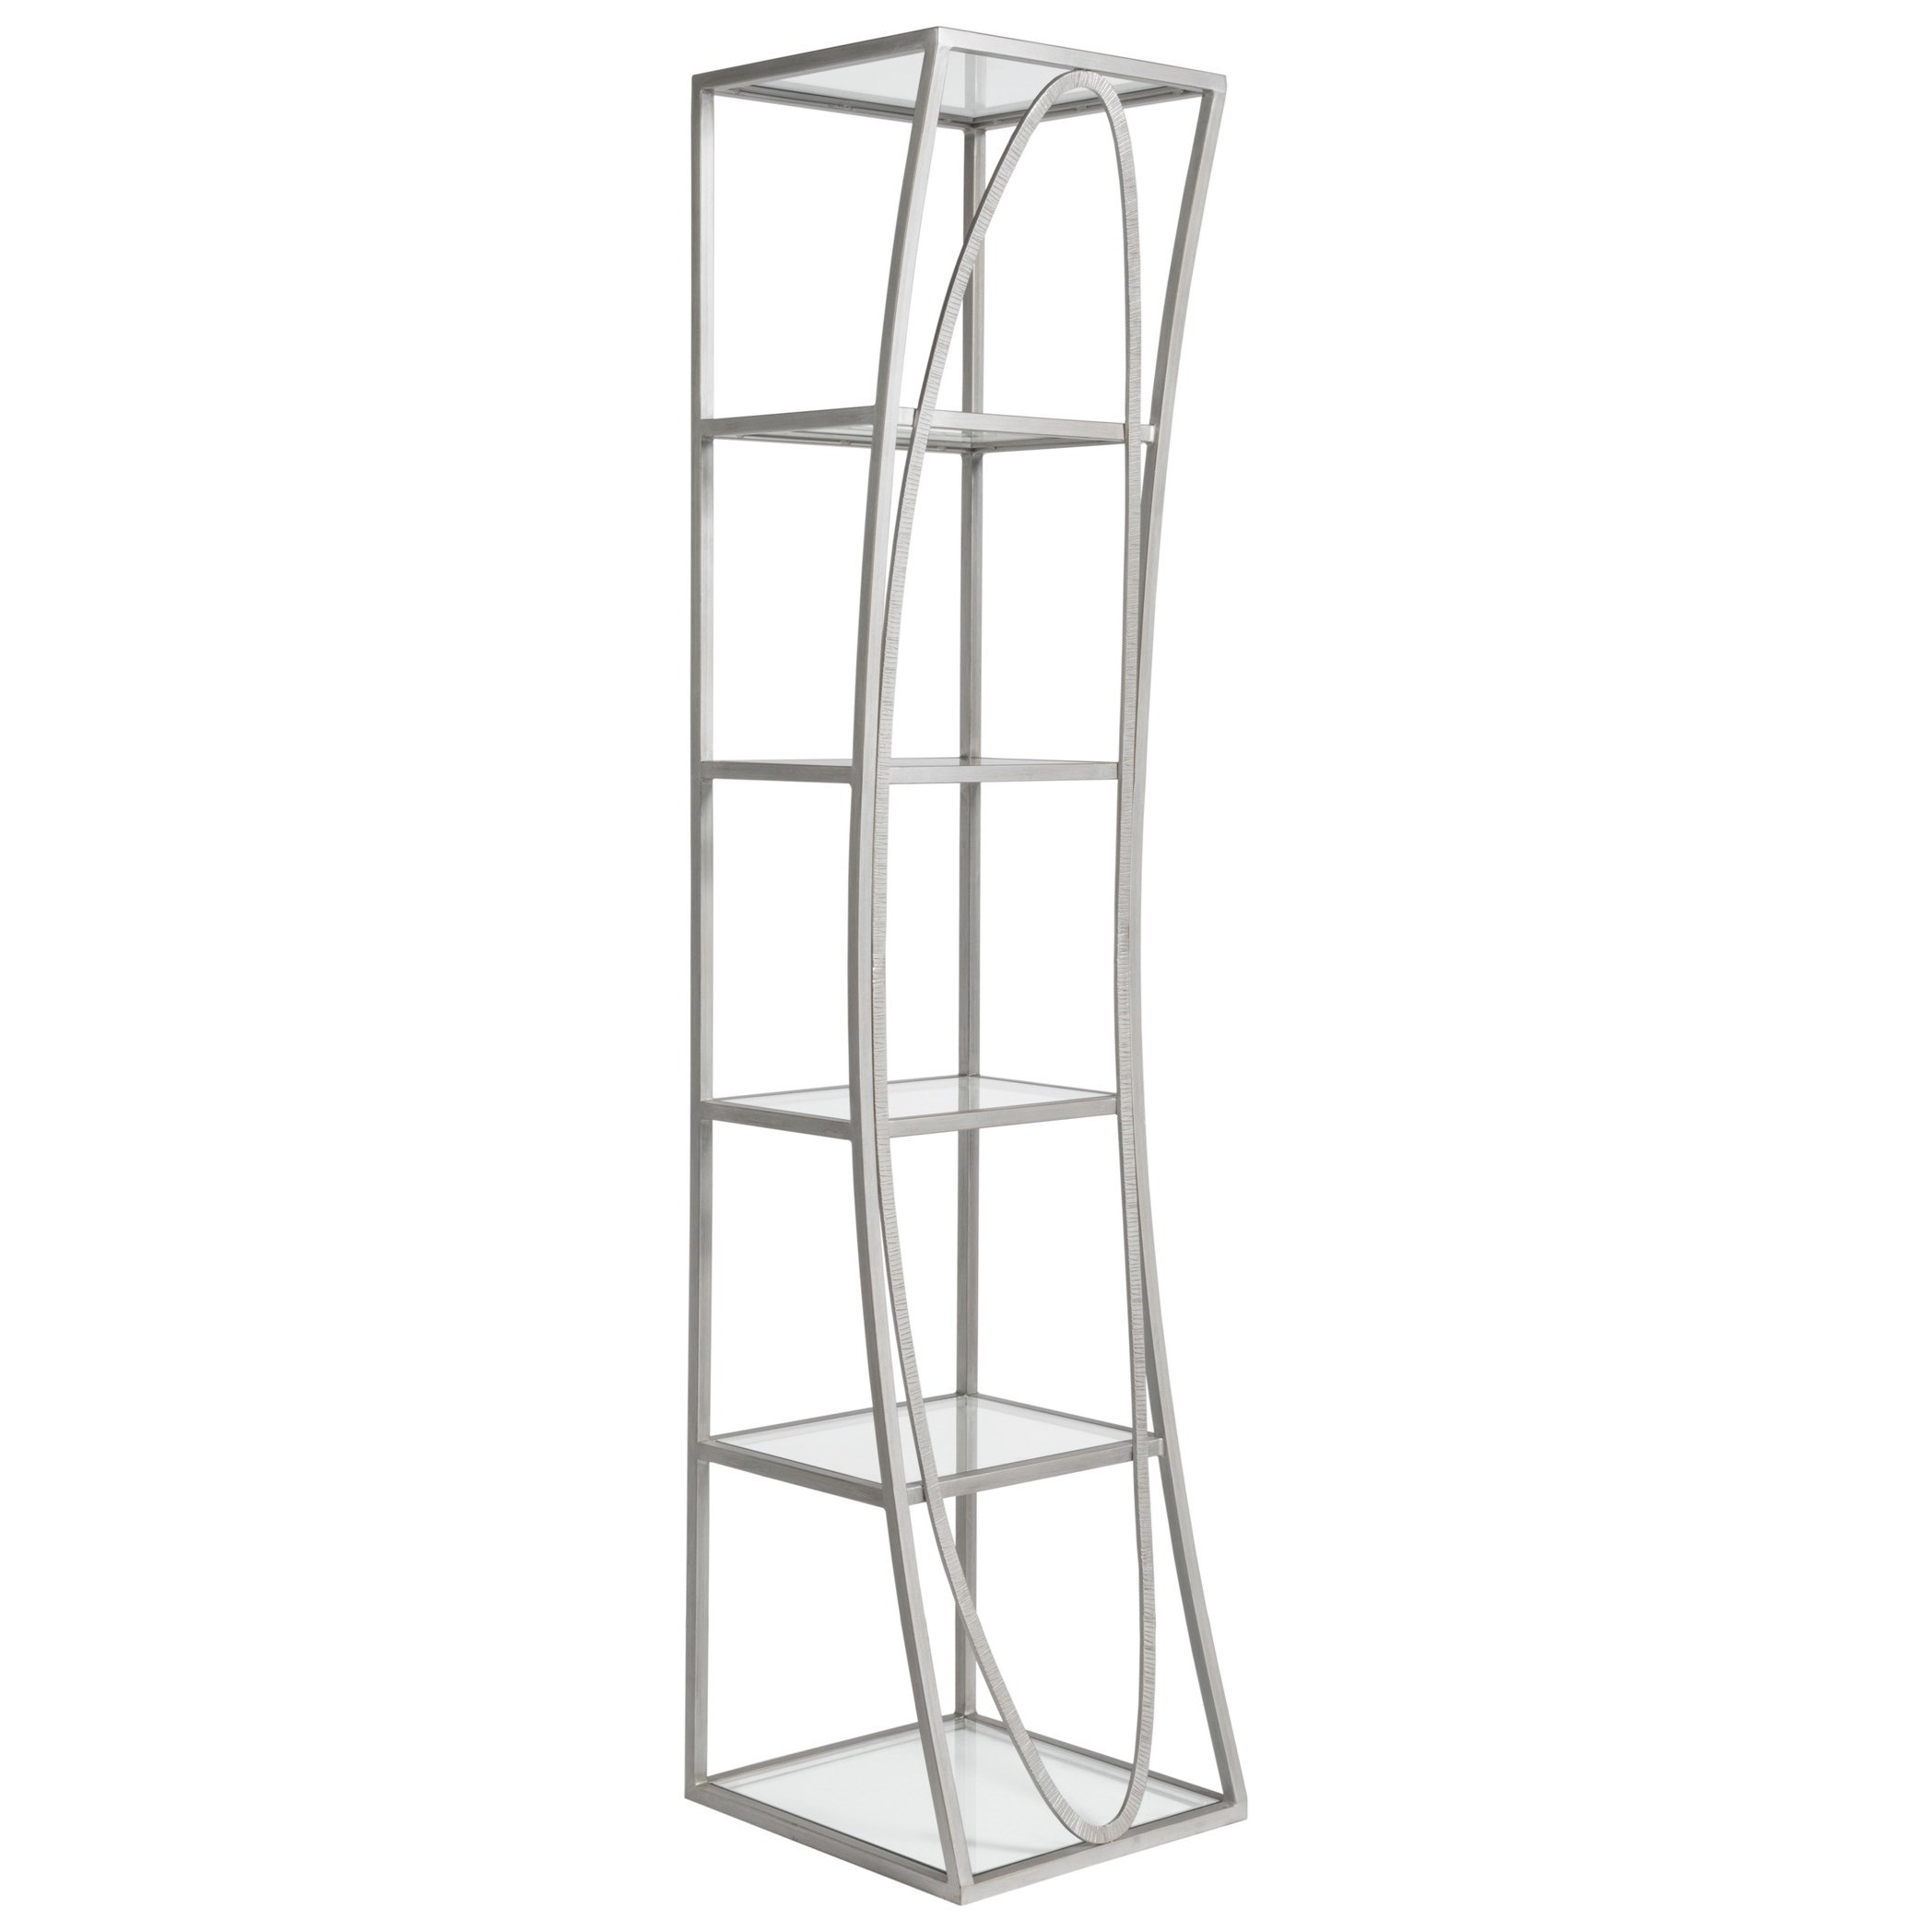 Metal Designs Ellipse Slim Etagere by Artistica at Baer's Furniture